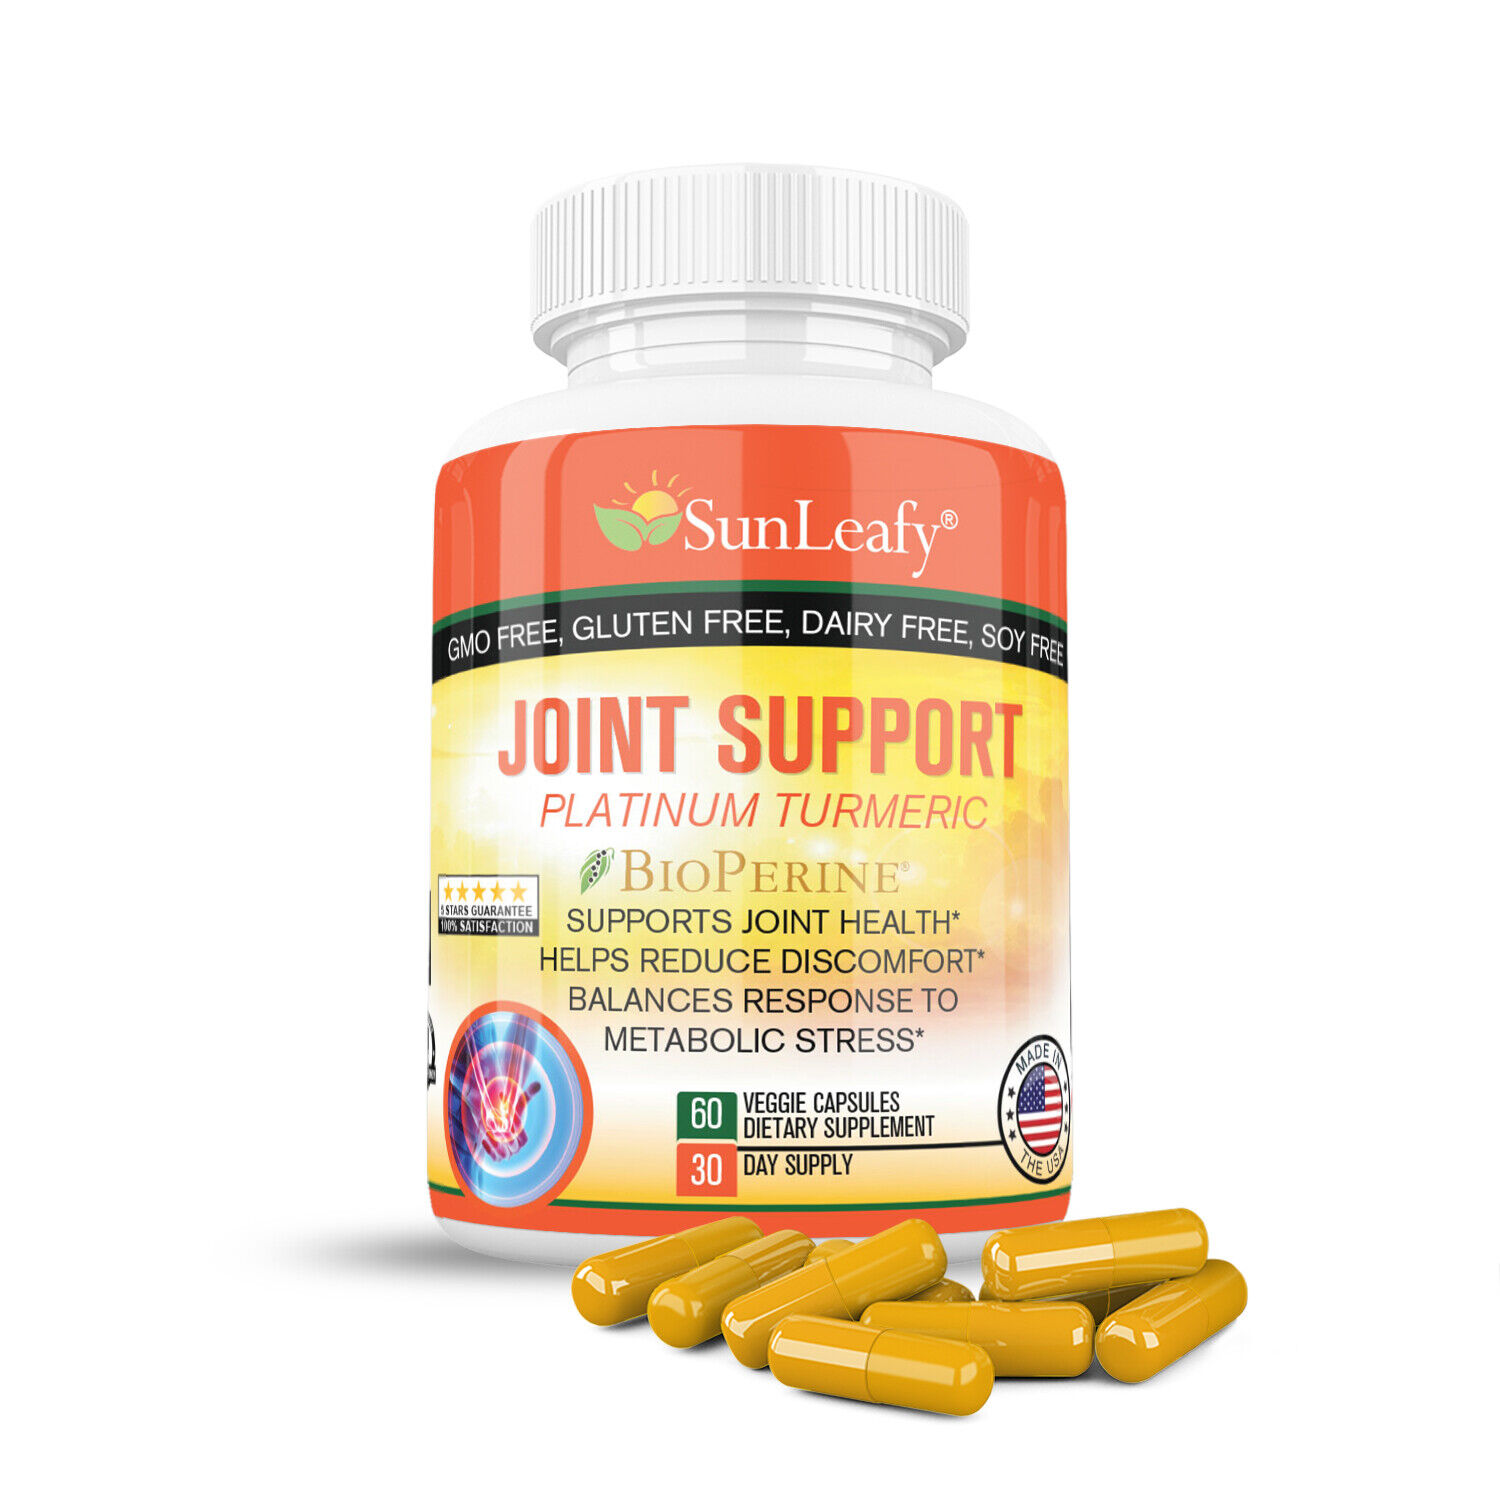 Joint Support Turmeric, Glucosamine, MSM, Free Shipping Worl